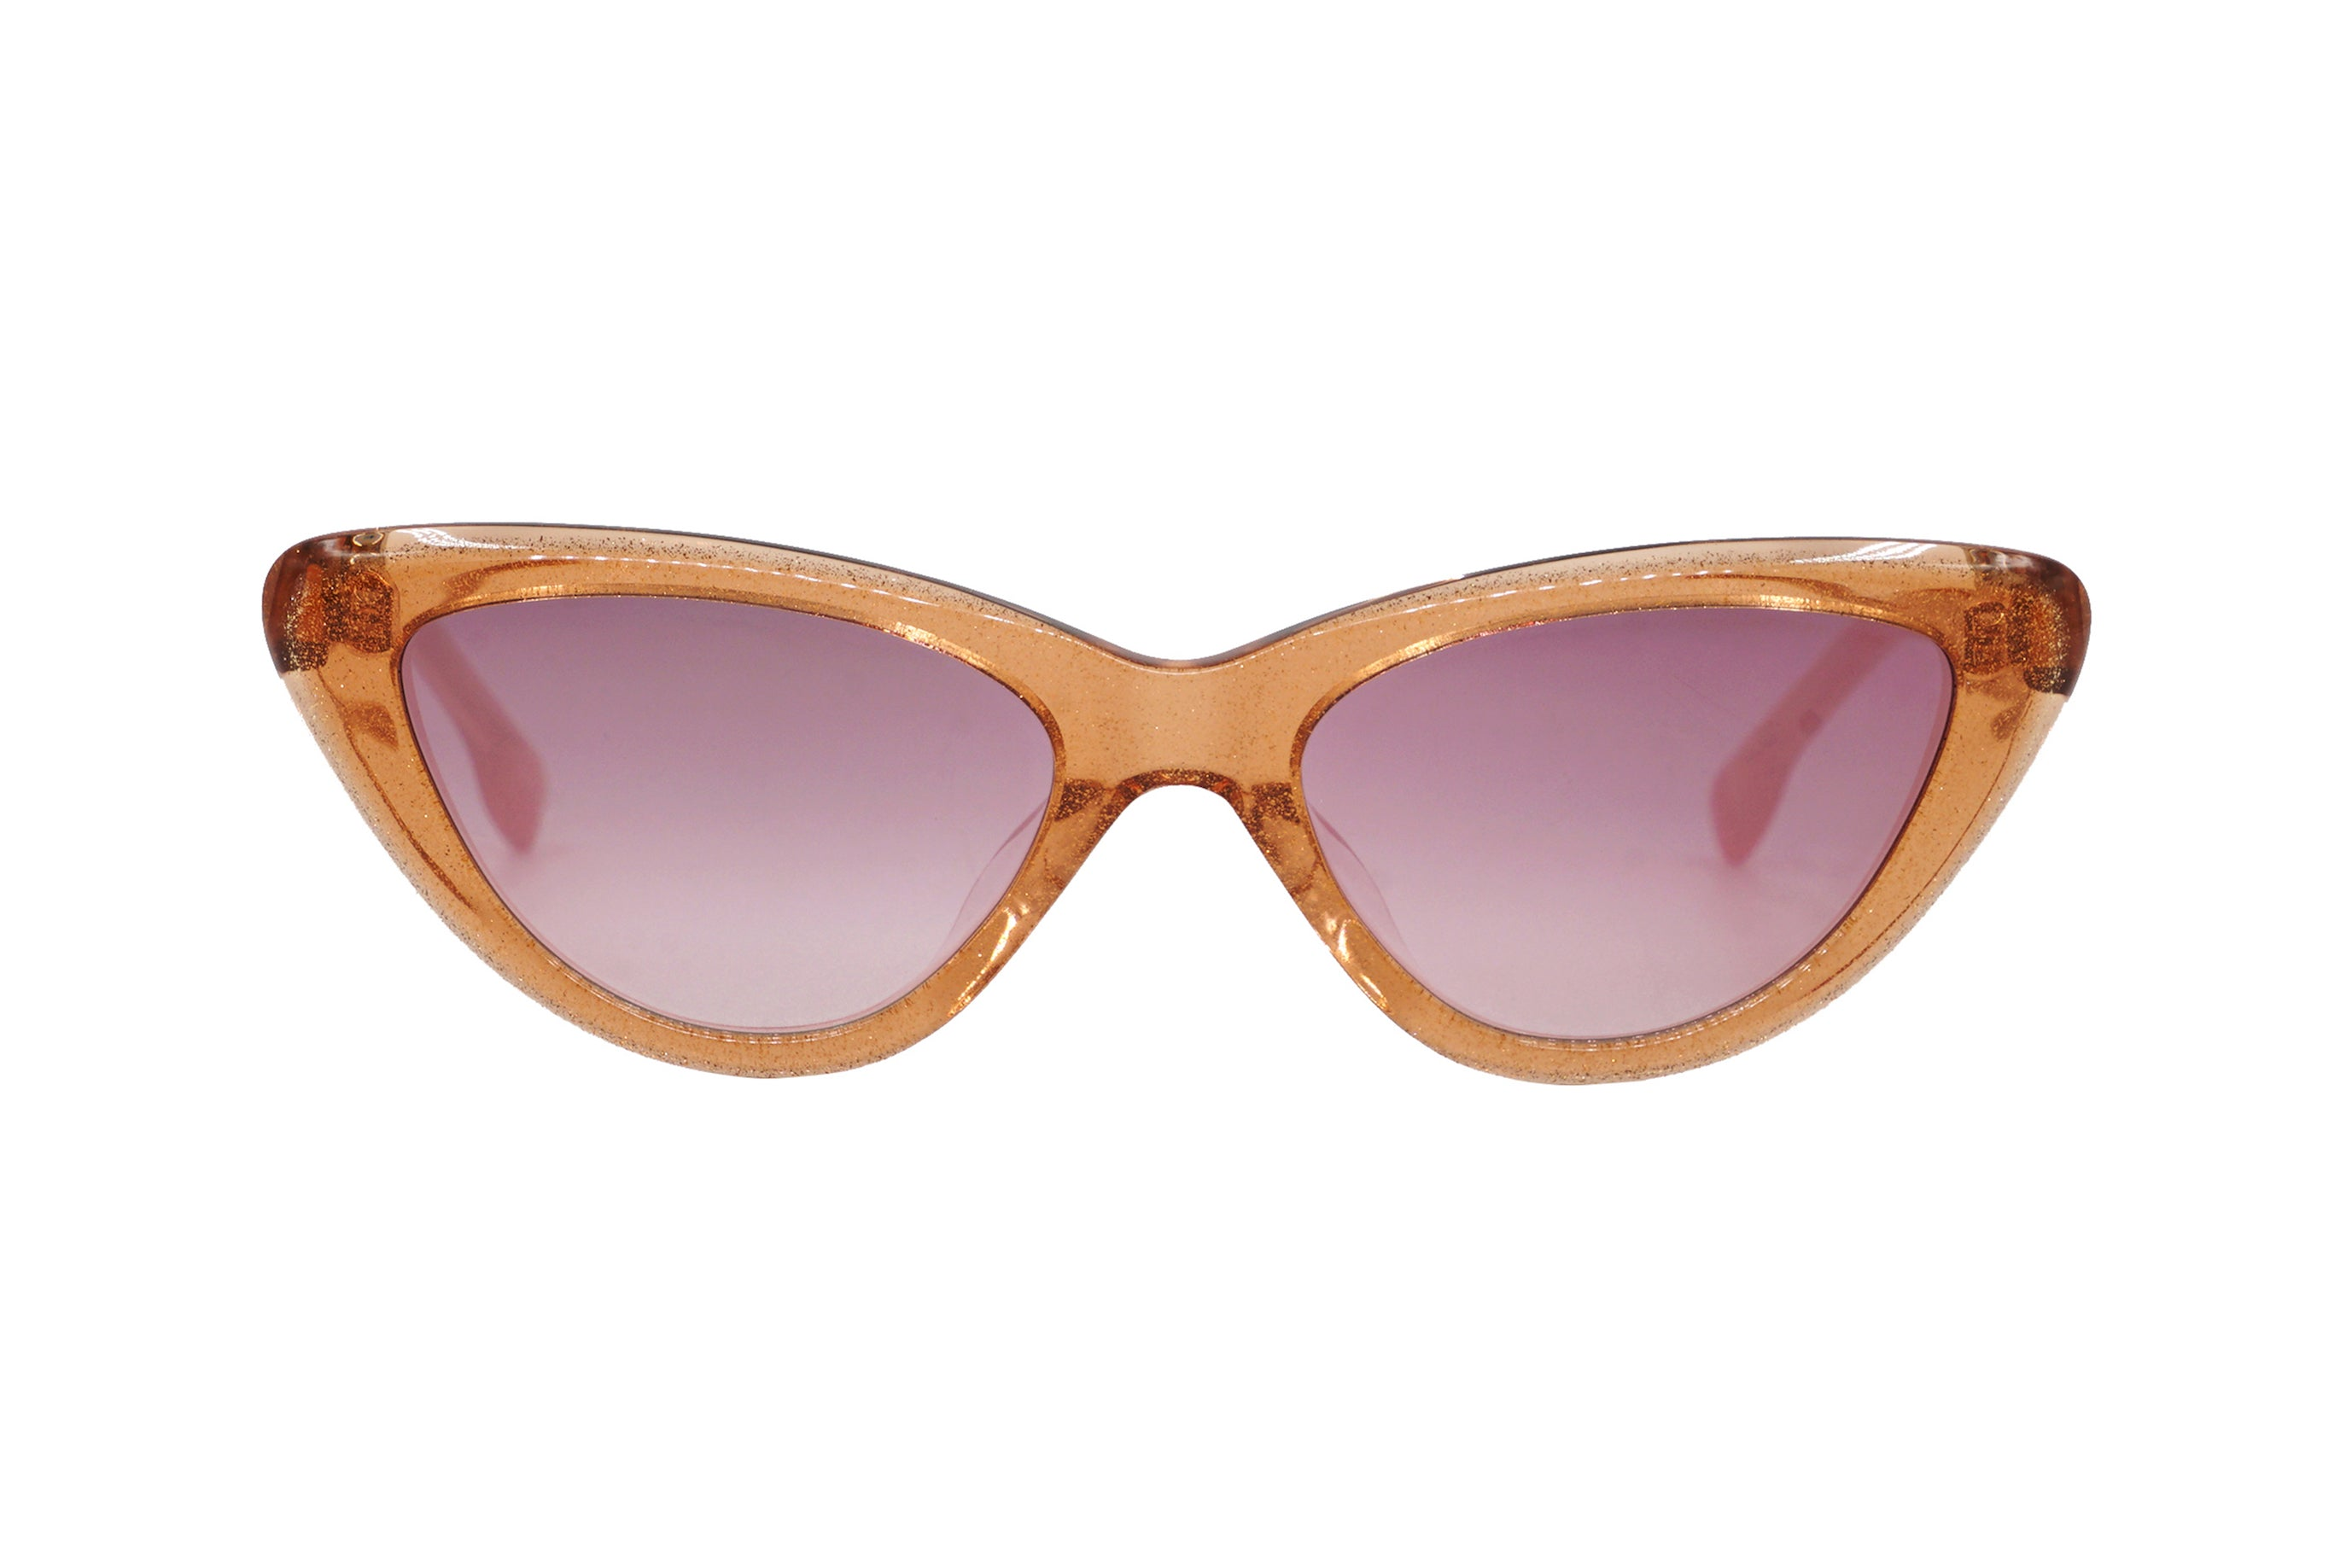 Beverly in Pink Mirror - Peppertint - Designer sunglasses